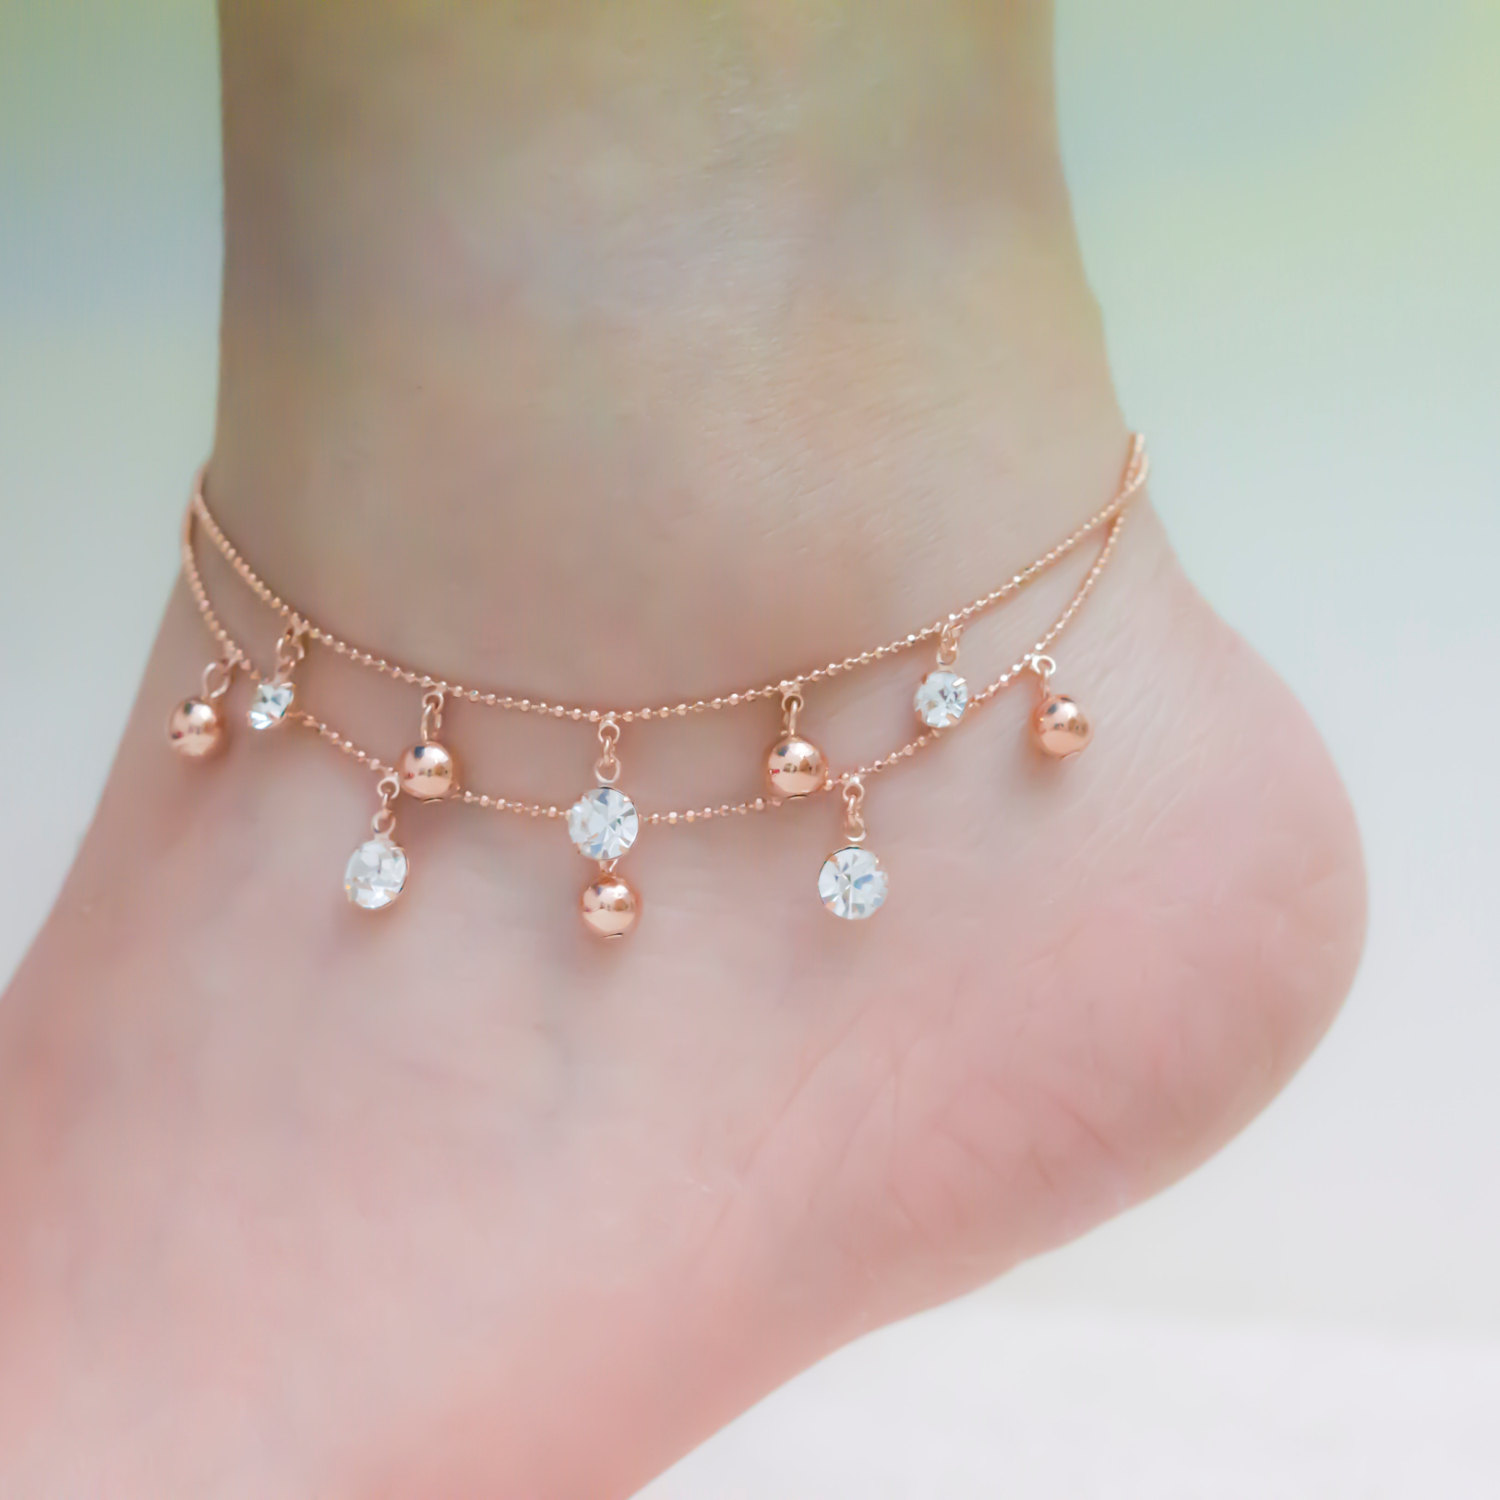 yellow gold ankle star lyst jewelry s bracelet whitegold anklet diamond t women meira and white moon